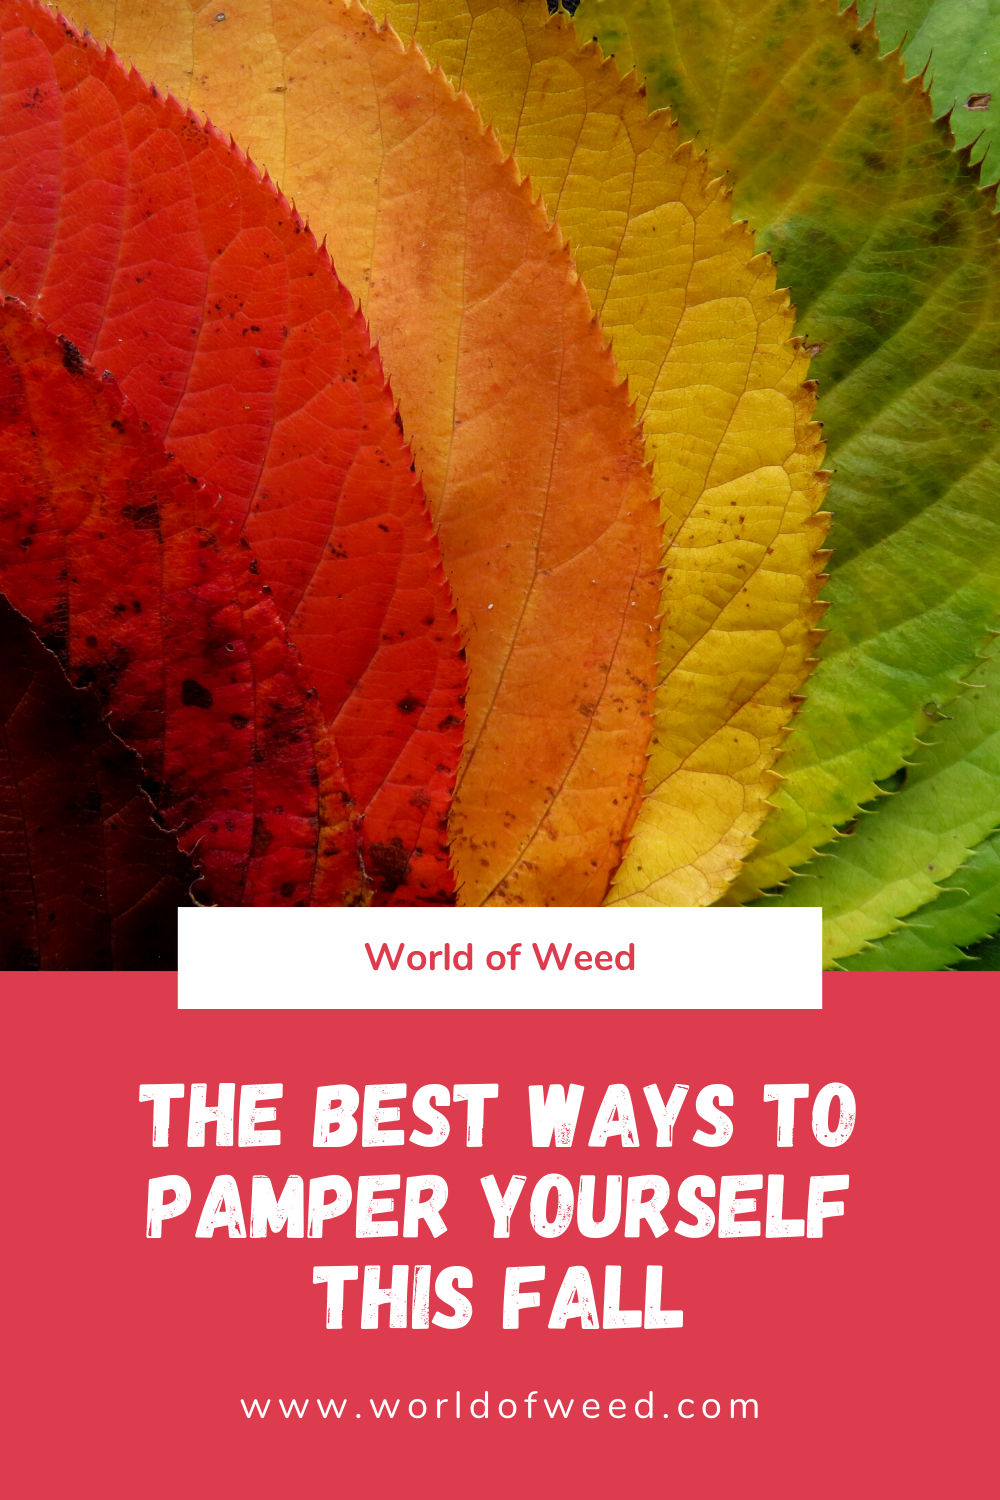 The Best Ways to Pamper Yourself This Fall